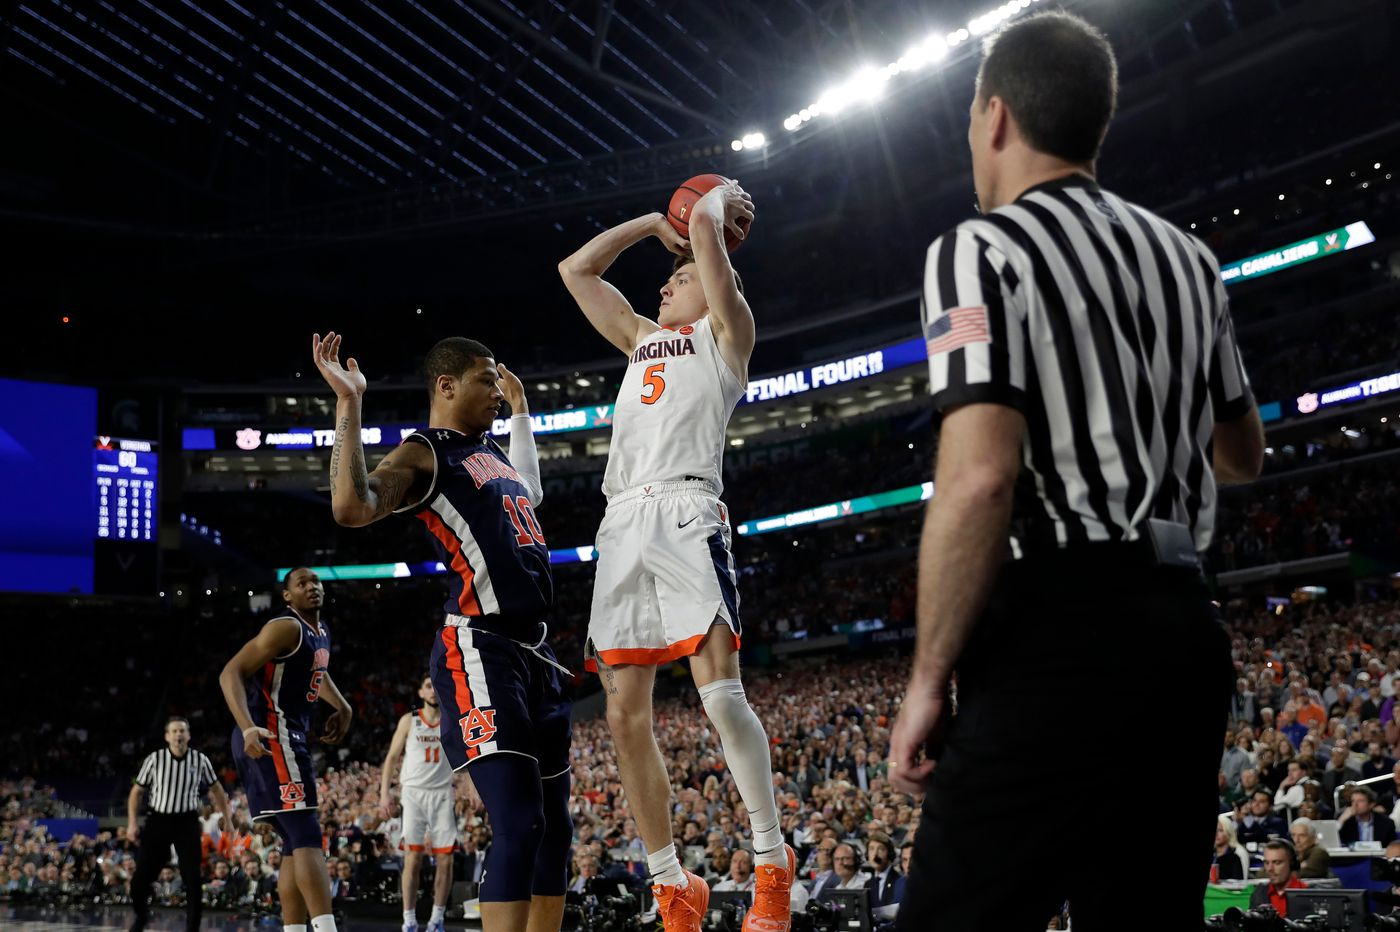 Final Four: Former Philly high school star Samir Doughty handles Auburn's disappointment at hands of Virginia with class